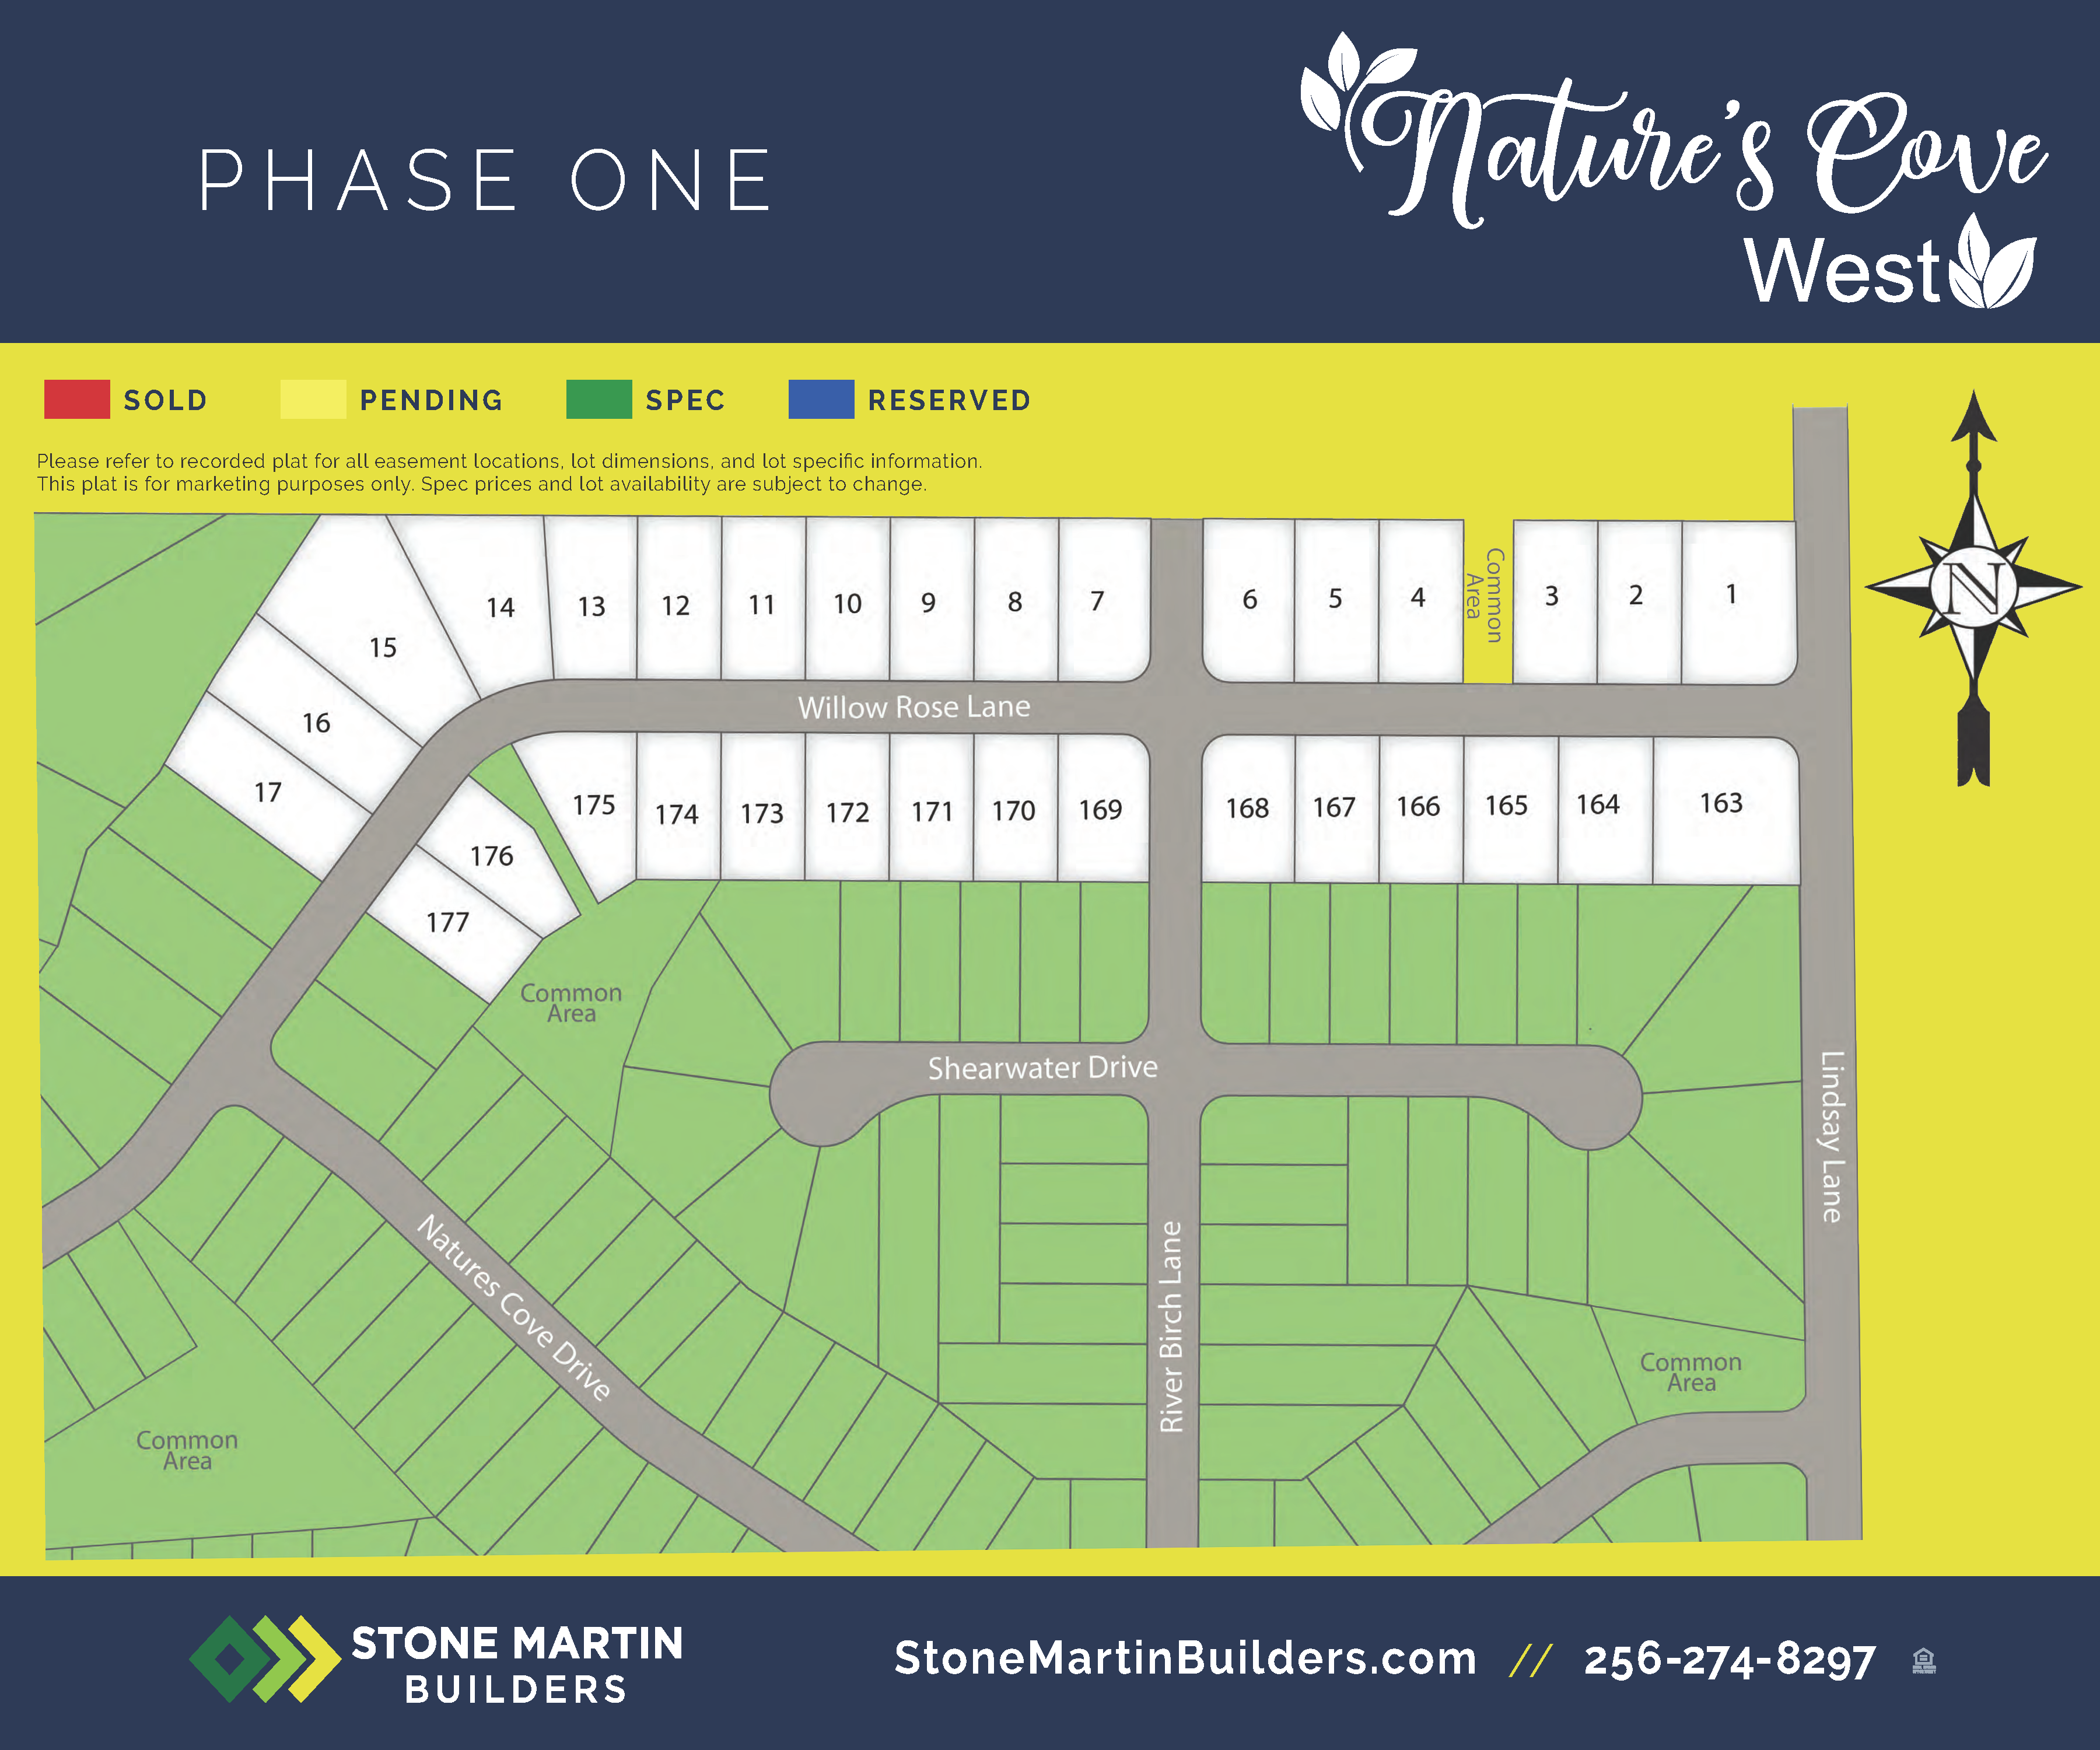 Athens, AL Nature's Cove West New Homes from Stone Martin Builders